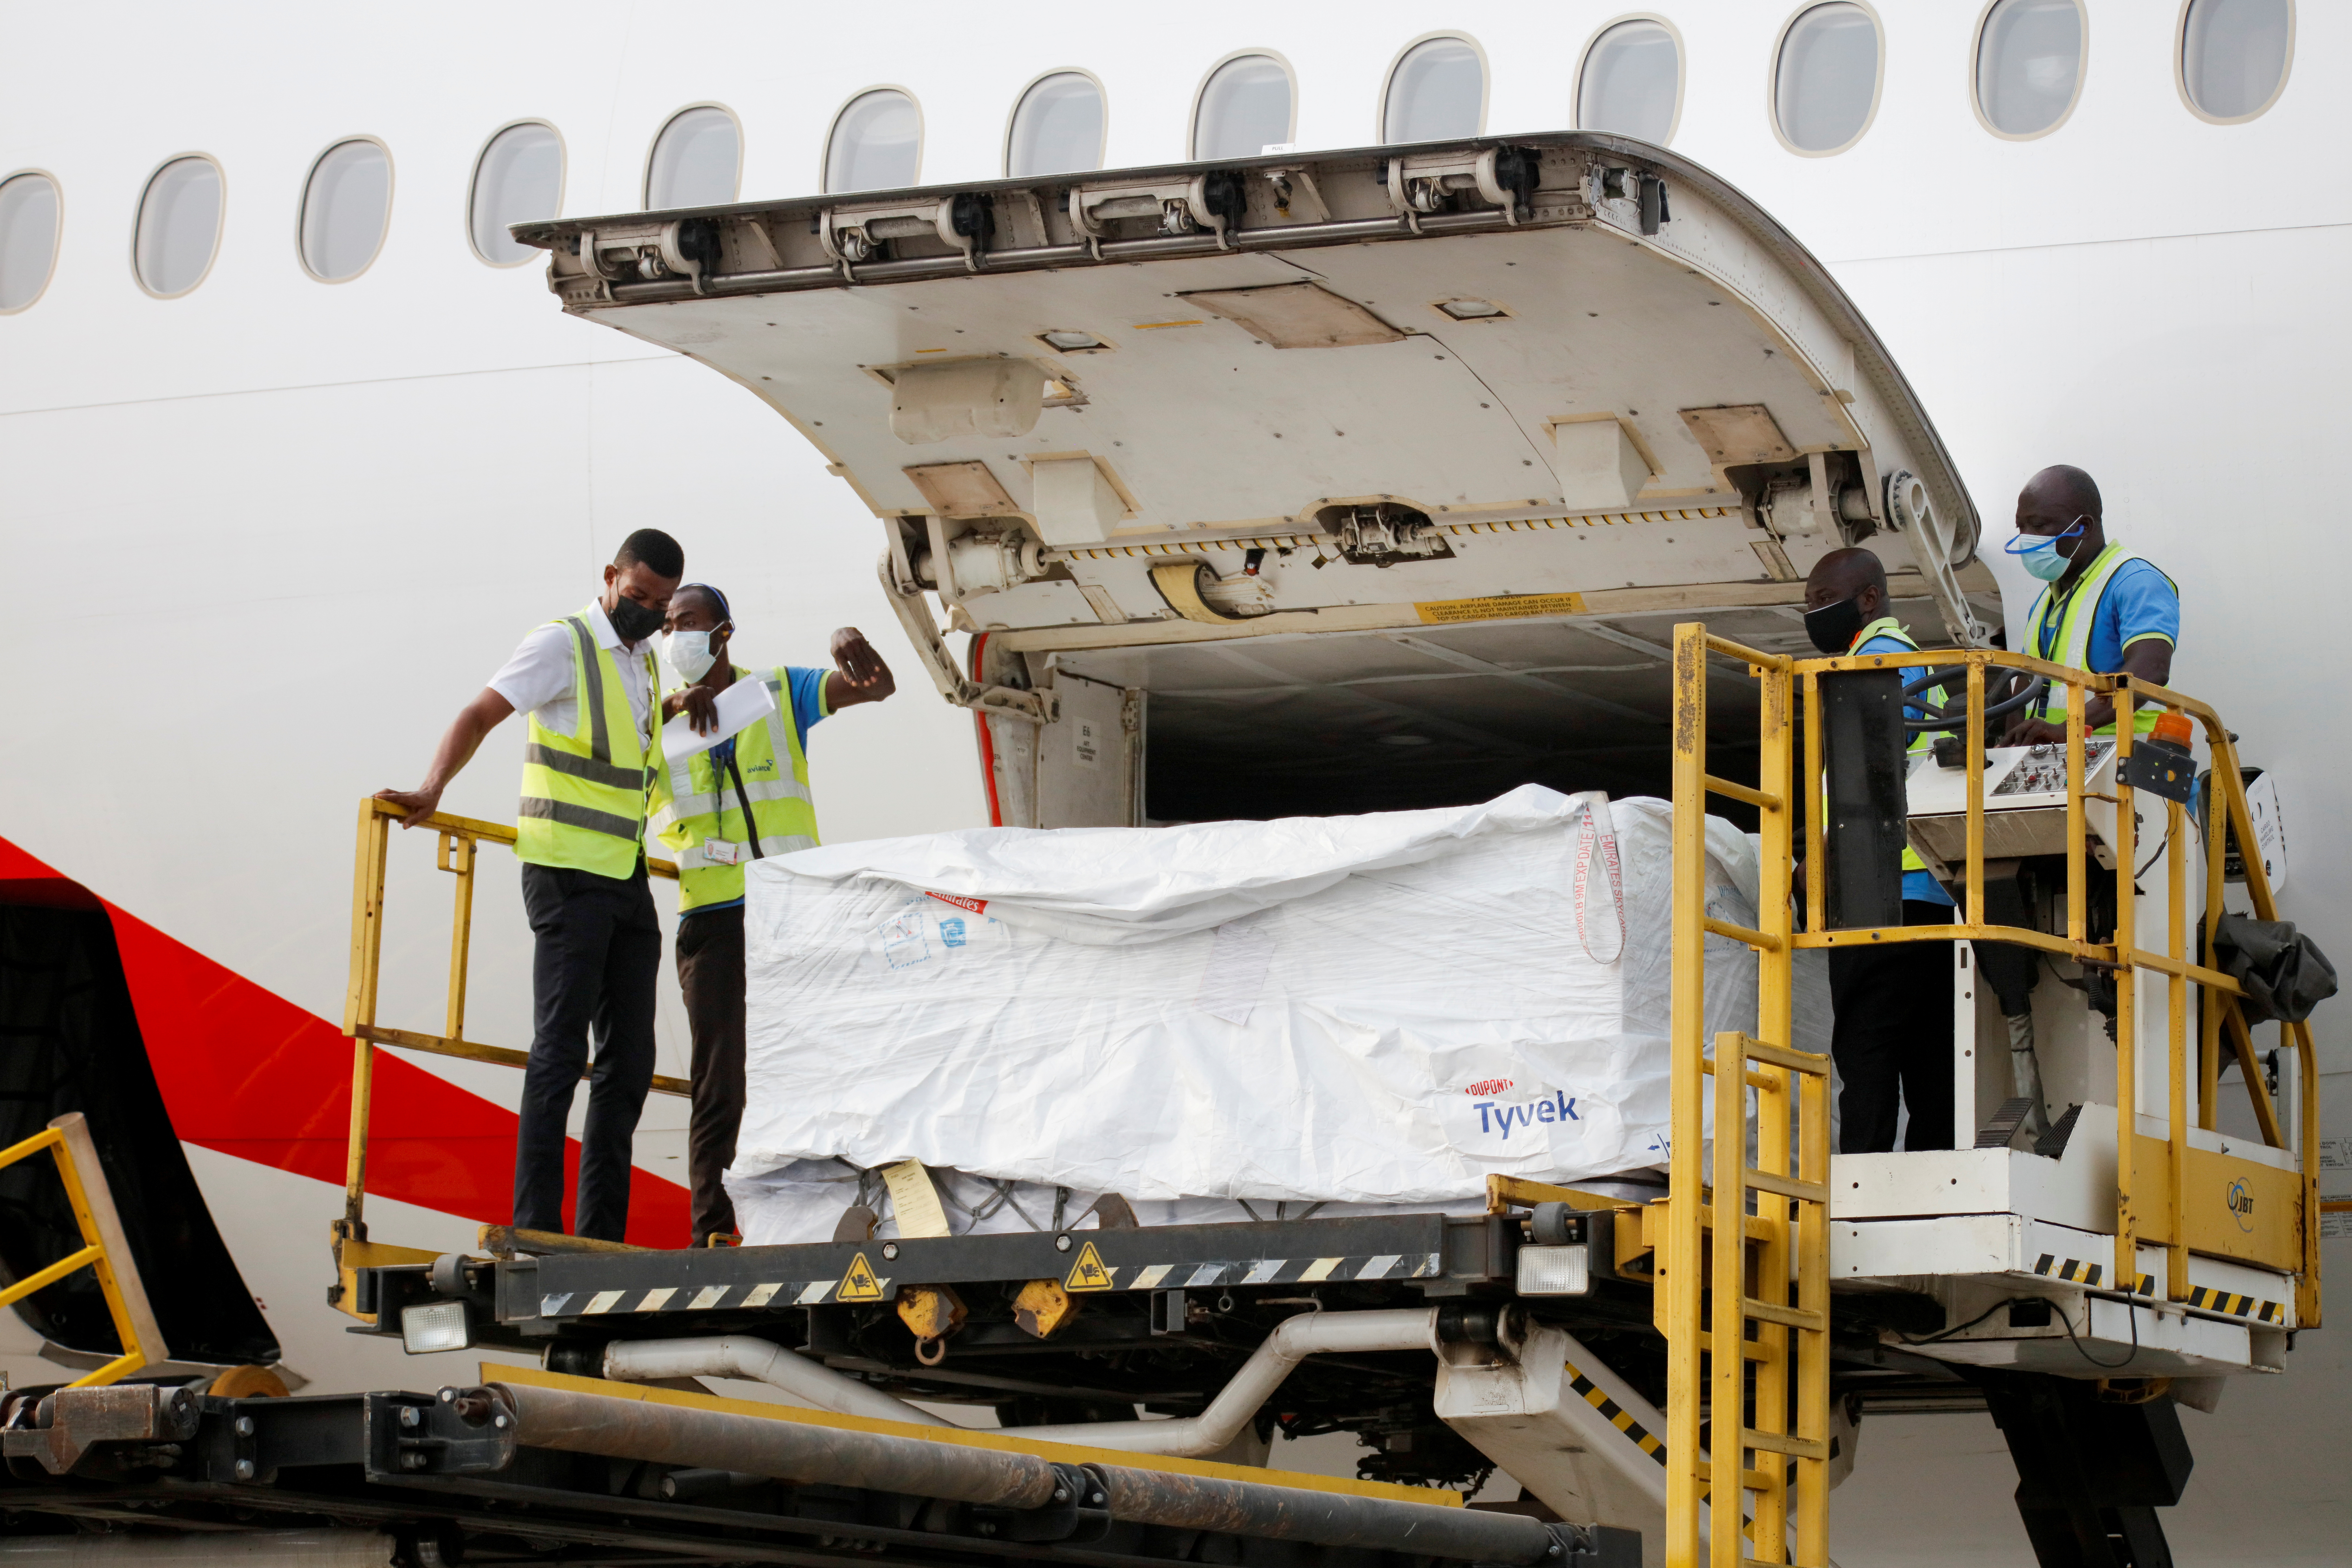 Workers offload boxes of AstraZeneca/Oxford vaccines as the country receives its first batch of coronavirus disease (COVID-19) vaccines under COVAX scheme, at the international airtport of Accra, Ghana February 24, 2021. REUTERS/Francis Kokoroko